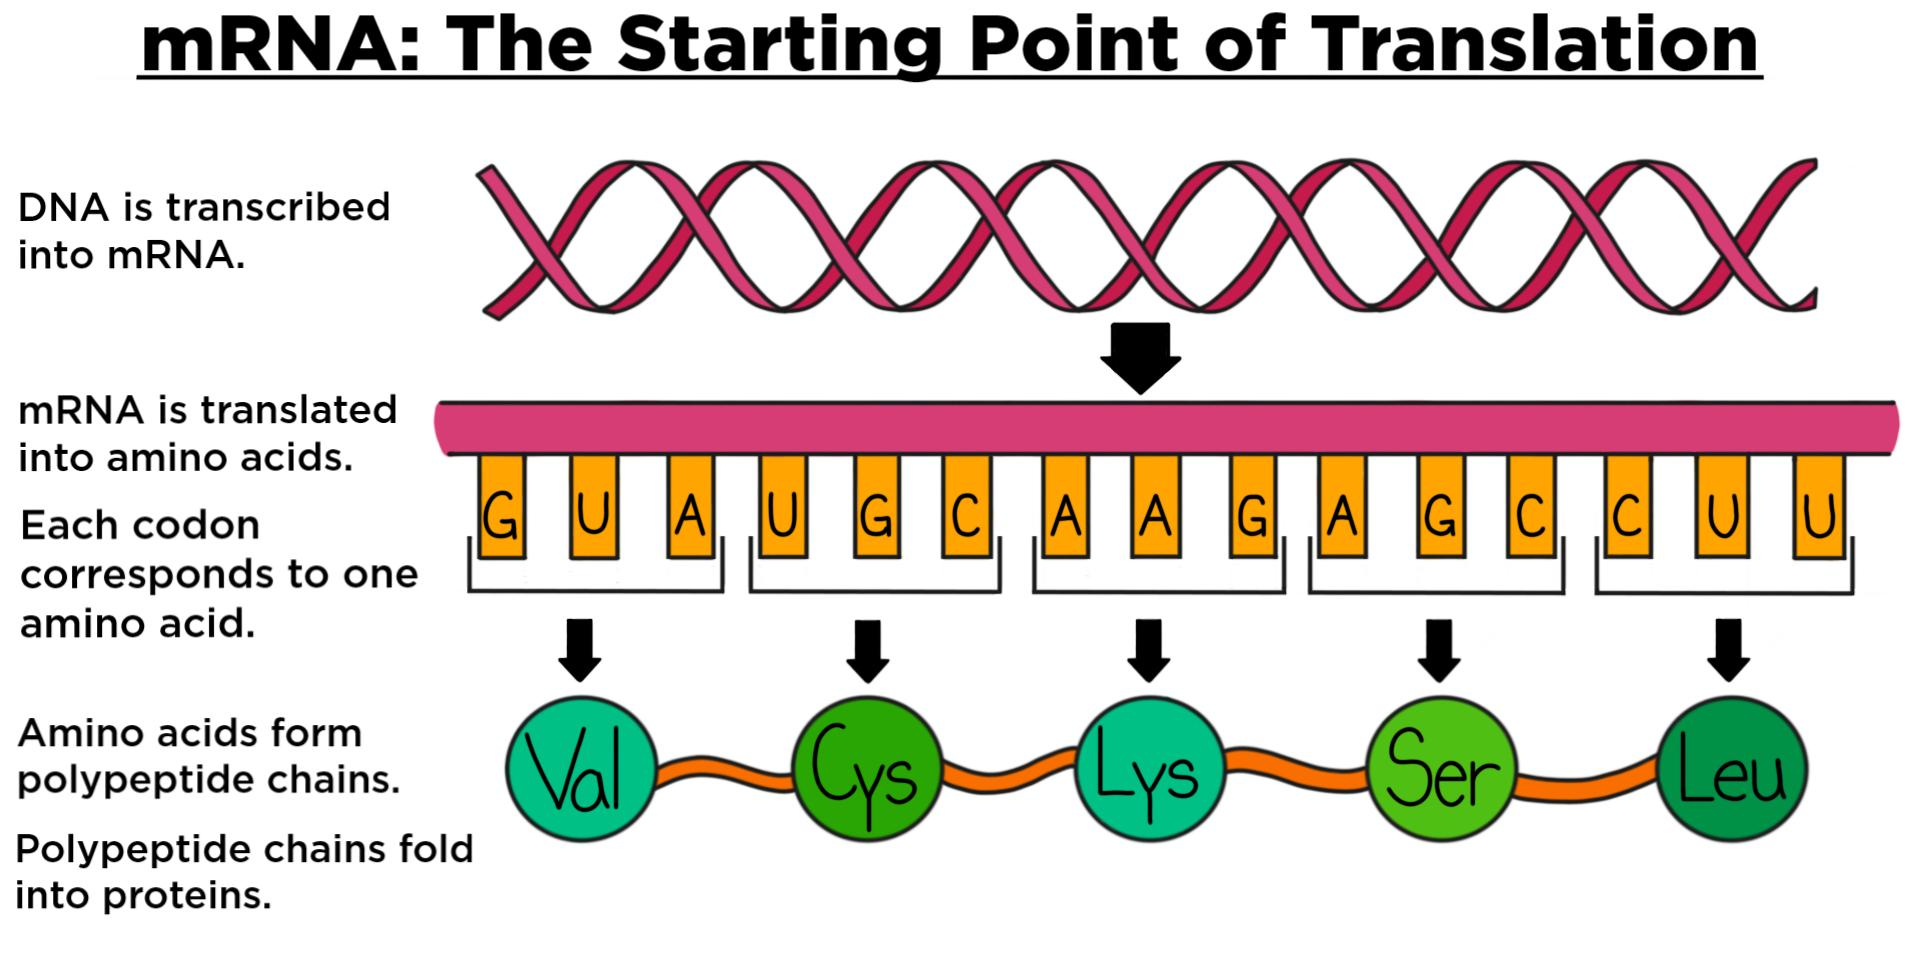 Messenger RNA (mRNA) — Overview & Role in Translation - Expii